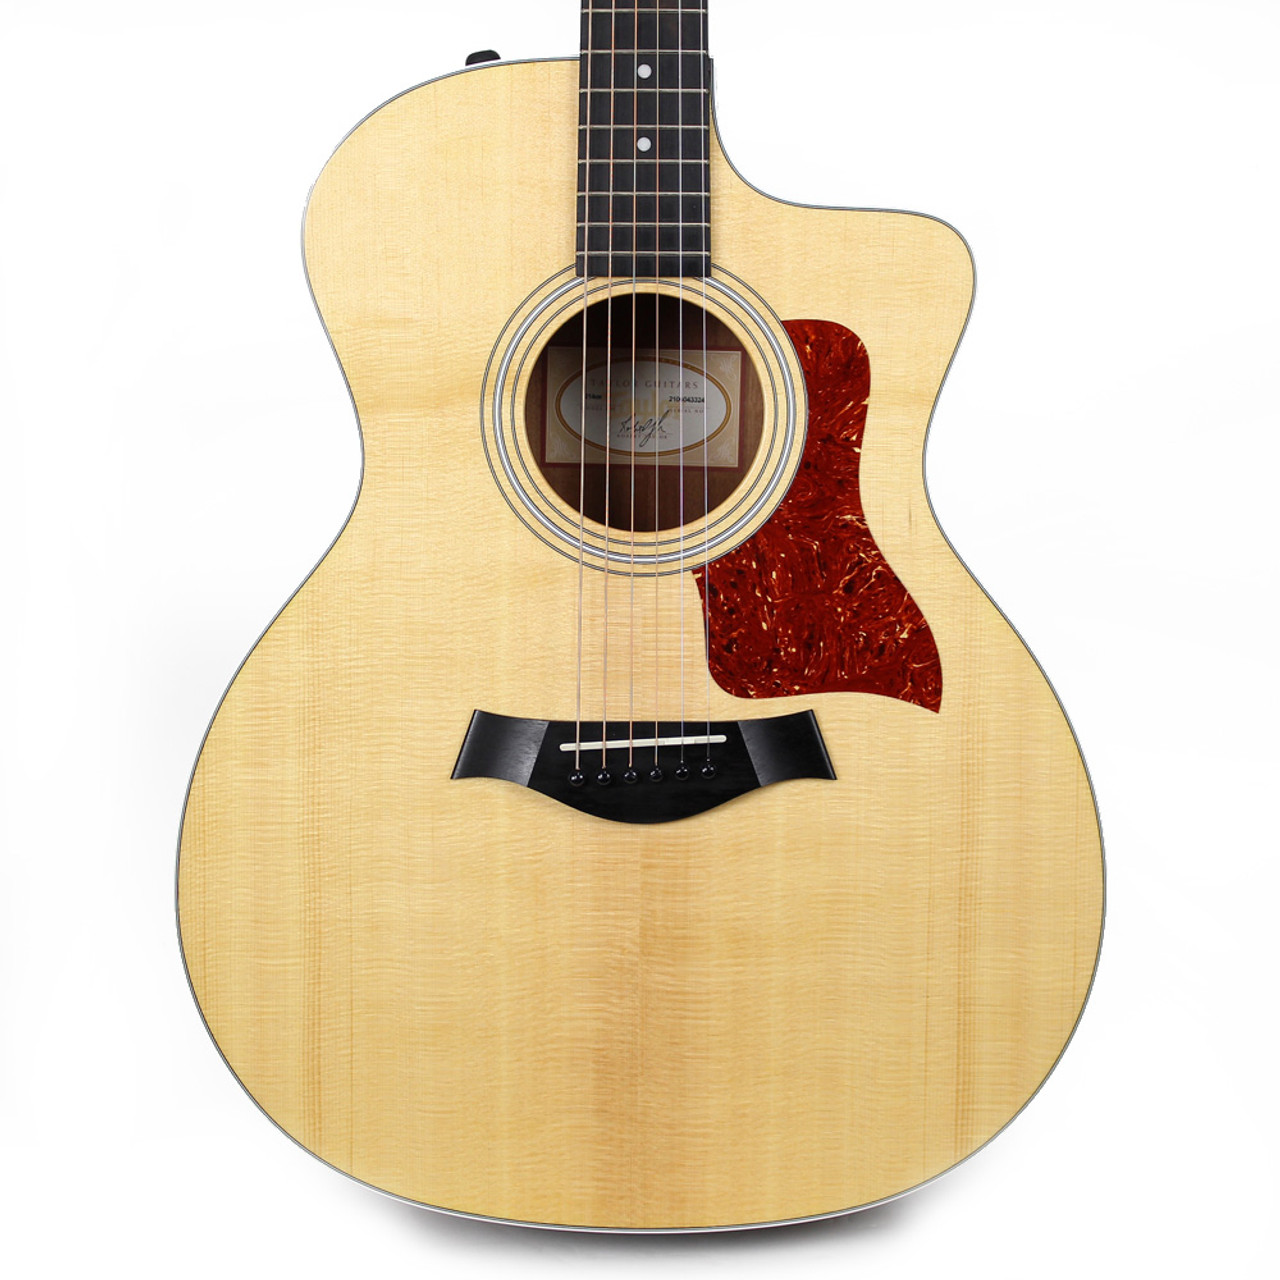 new used taylor 214ce grand auditorium acoustic electric guitar in natural cream city music. Black Bedroom Furniture Sets. Home Design Ideas